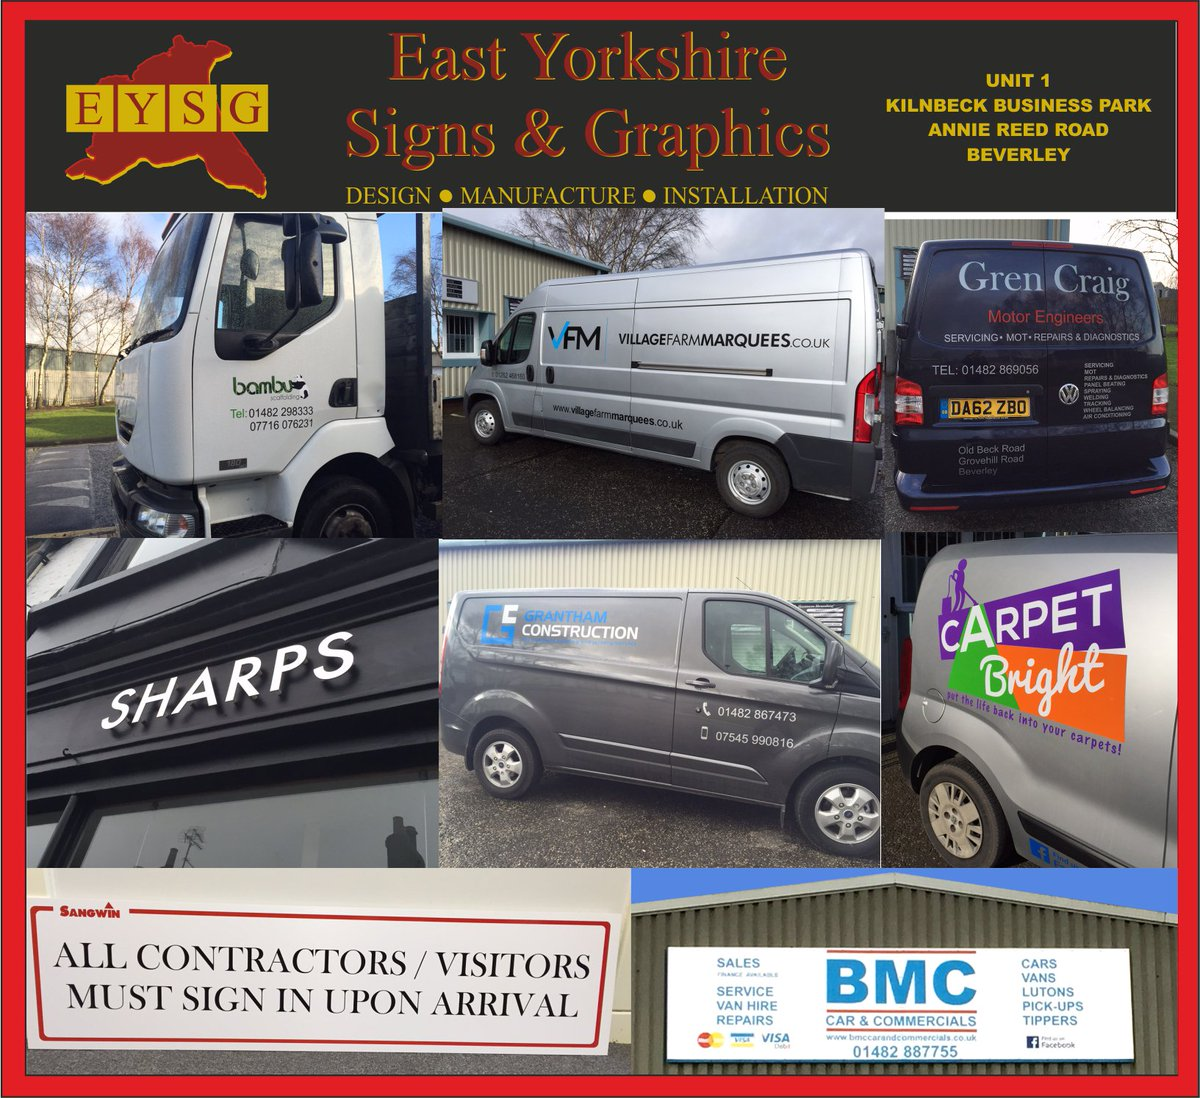 #Designers and #manufacturers of #signage &amp; #vehicle #graphics. Contact us on 01482 862266 or enquiries@eysg.co.uk  http:// eysg.co.uk  &nbsp;  <br>http://pic.twitter.com/u43VEBI9Mb